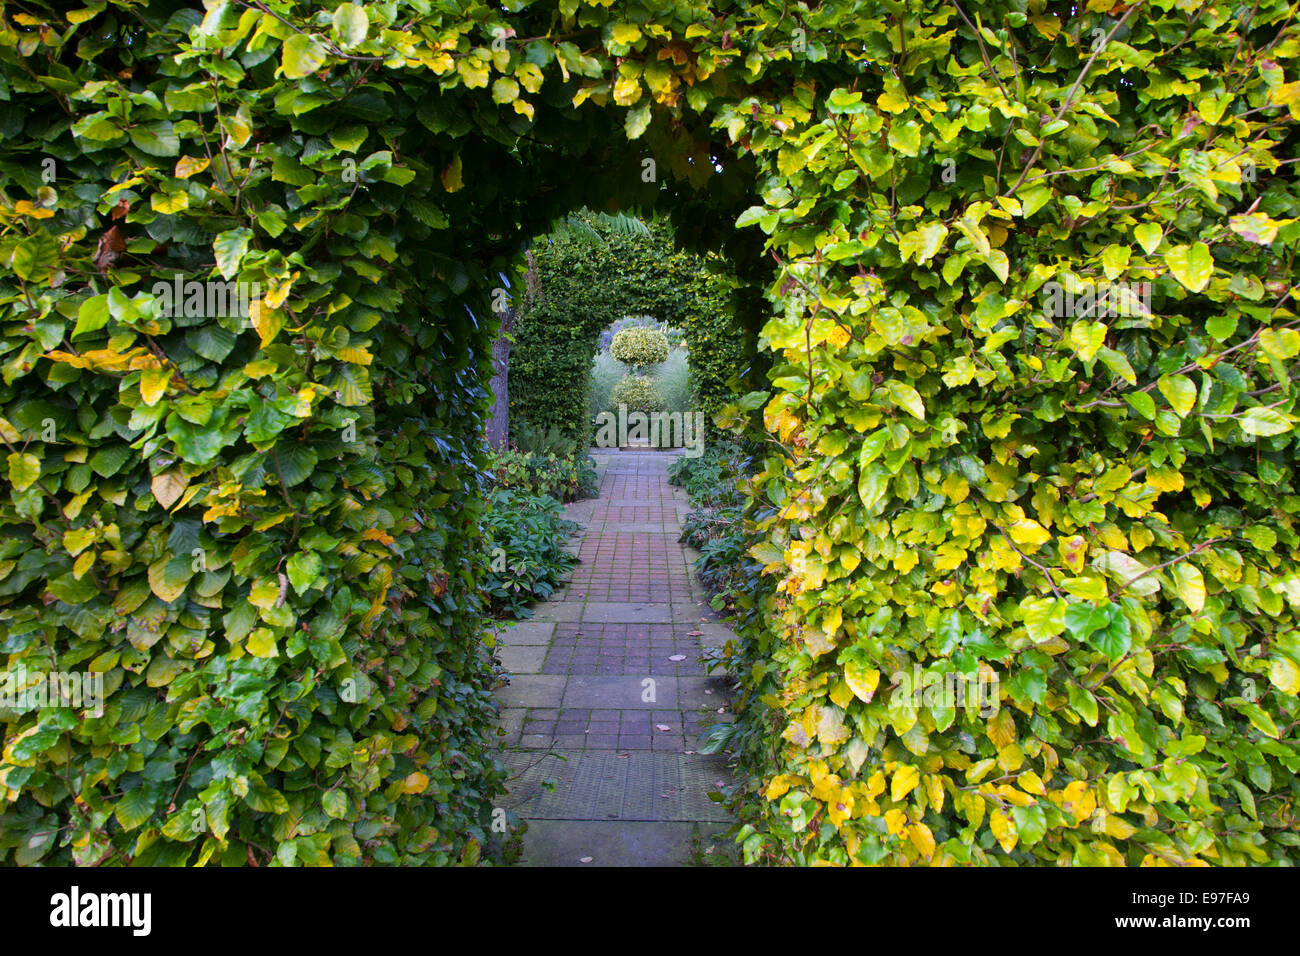 Arches in Beech hedging with path October - Stock Image